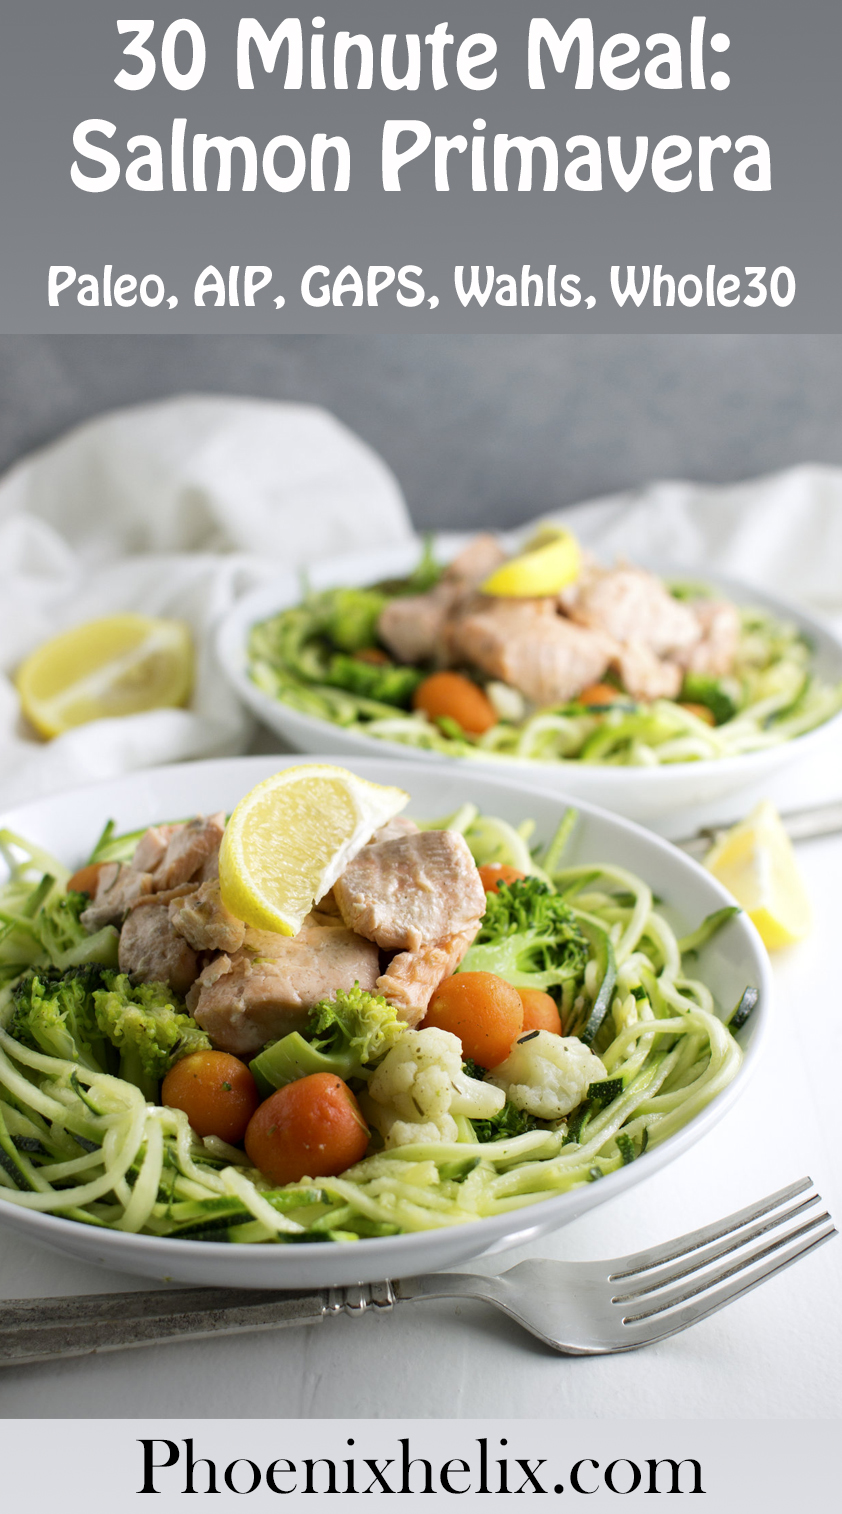 30 Minute Meal: Salmon Primavera with Zoodles | Phoenix Helix